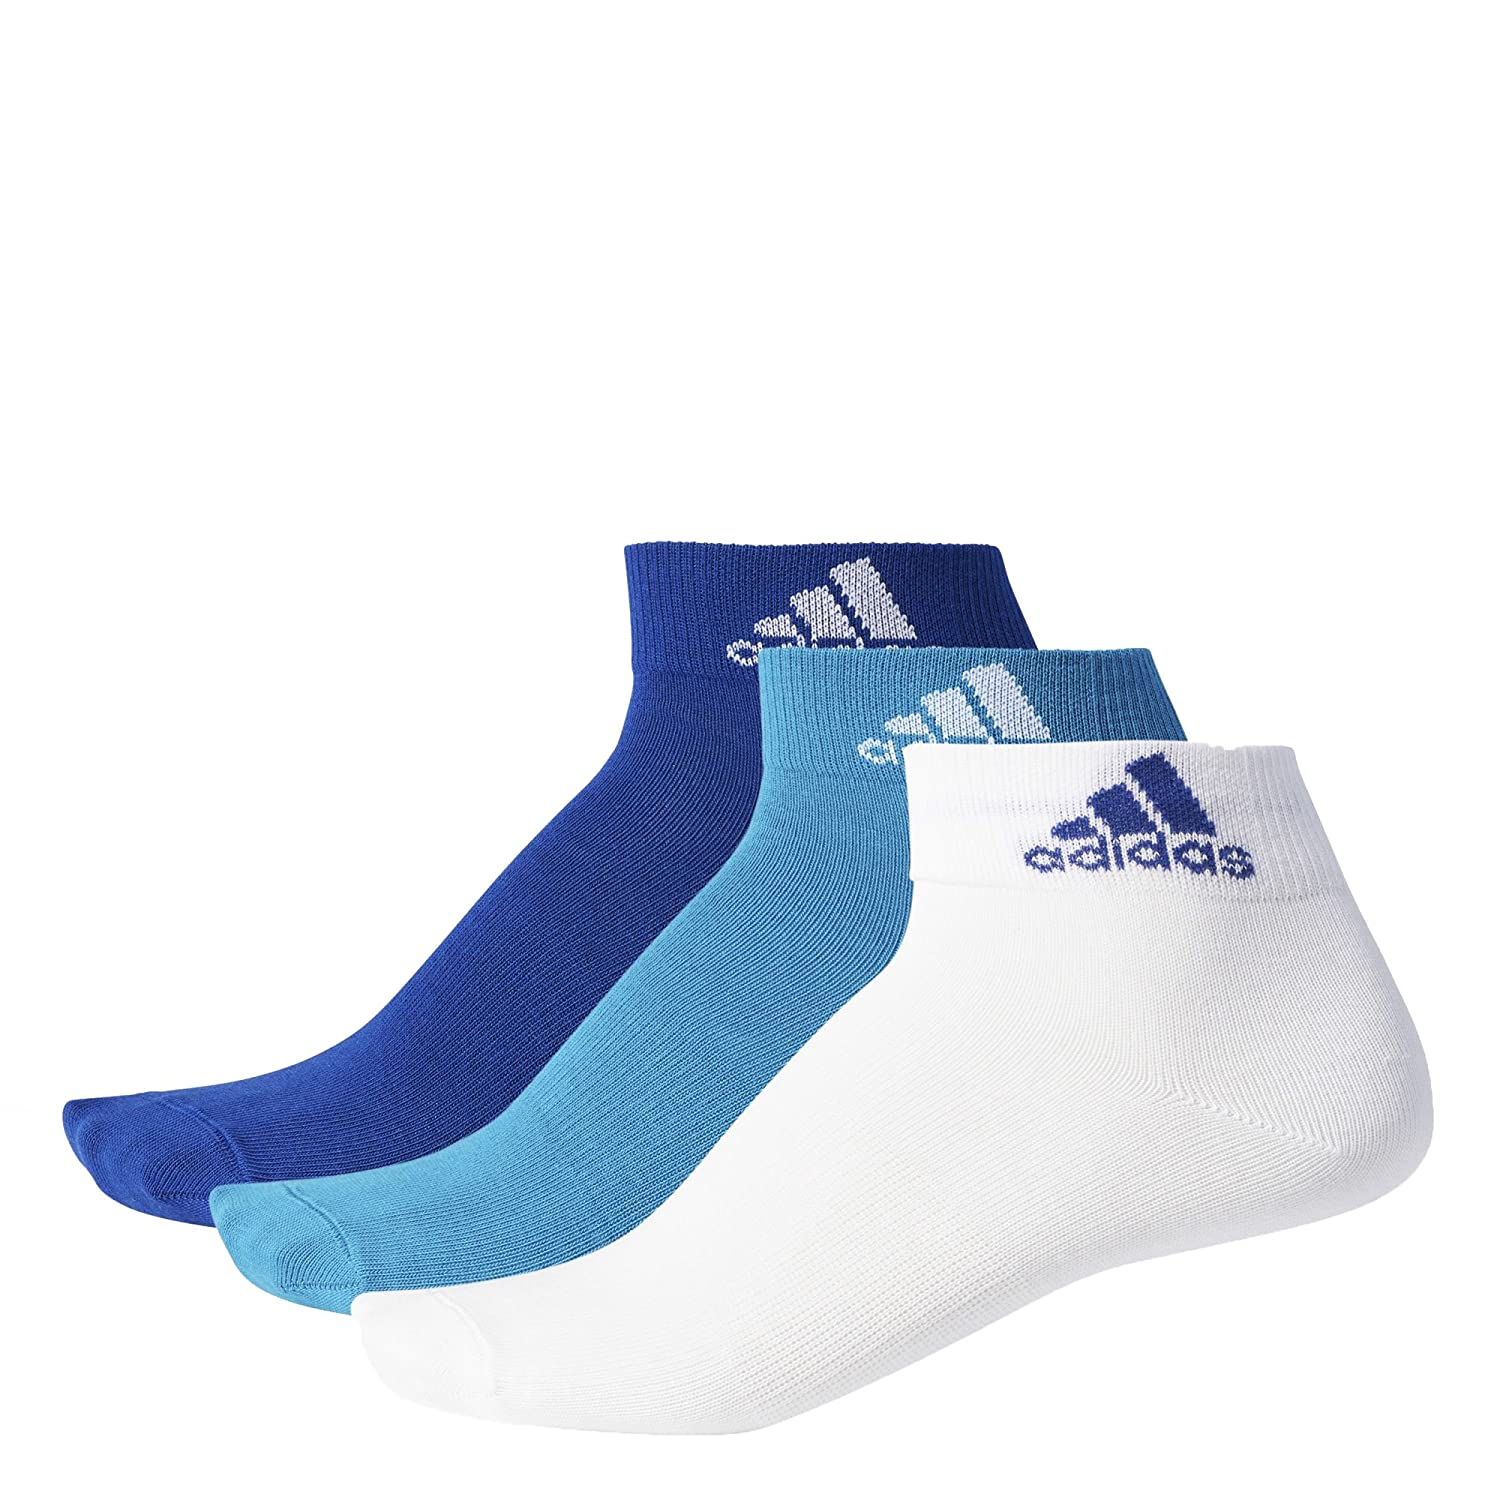 adidas Ankle T 3pp, Calze Unisex Bambini